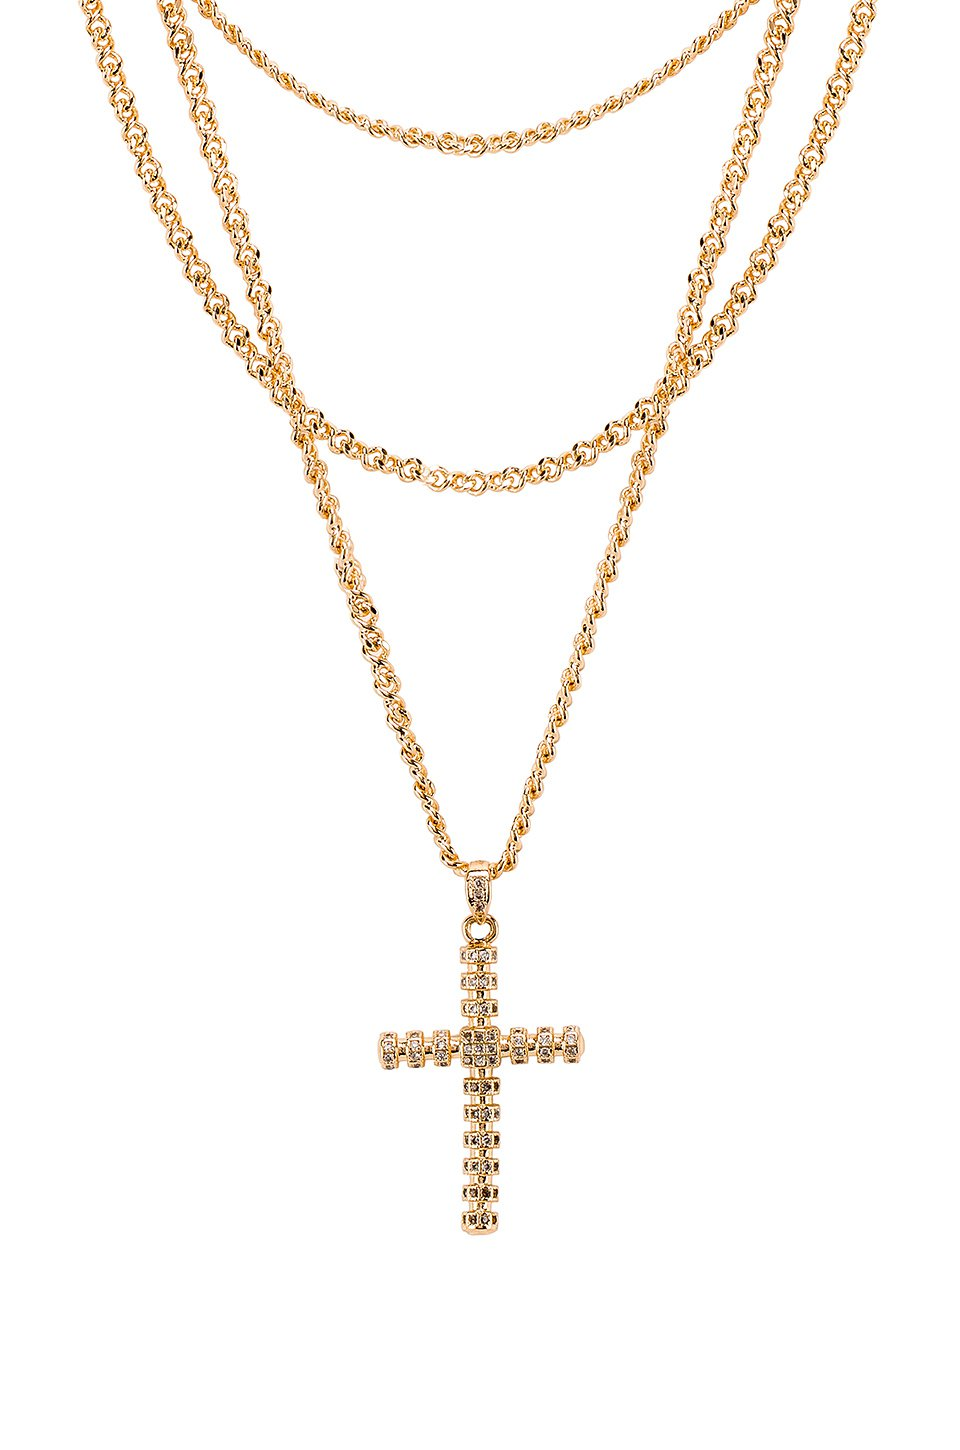 Holy Grail Necklace